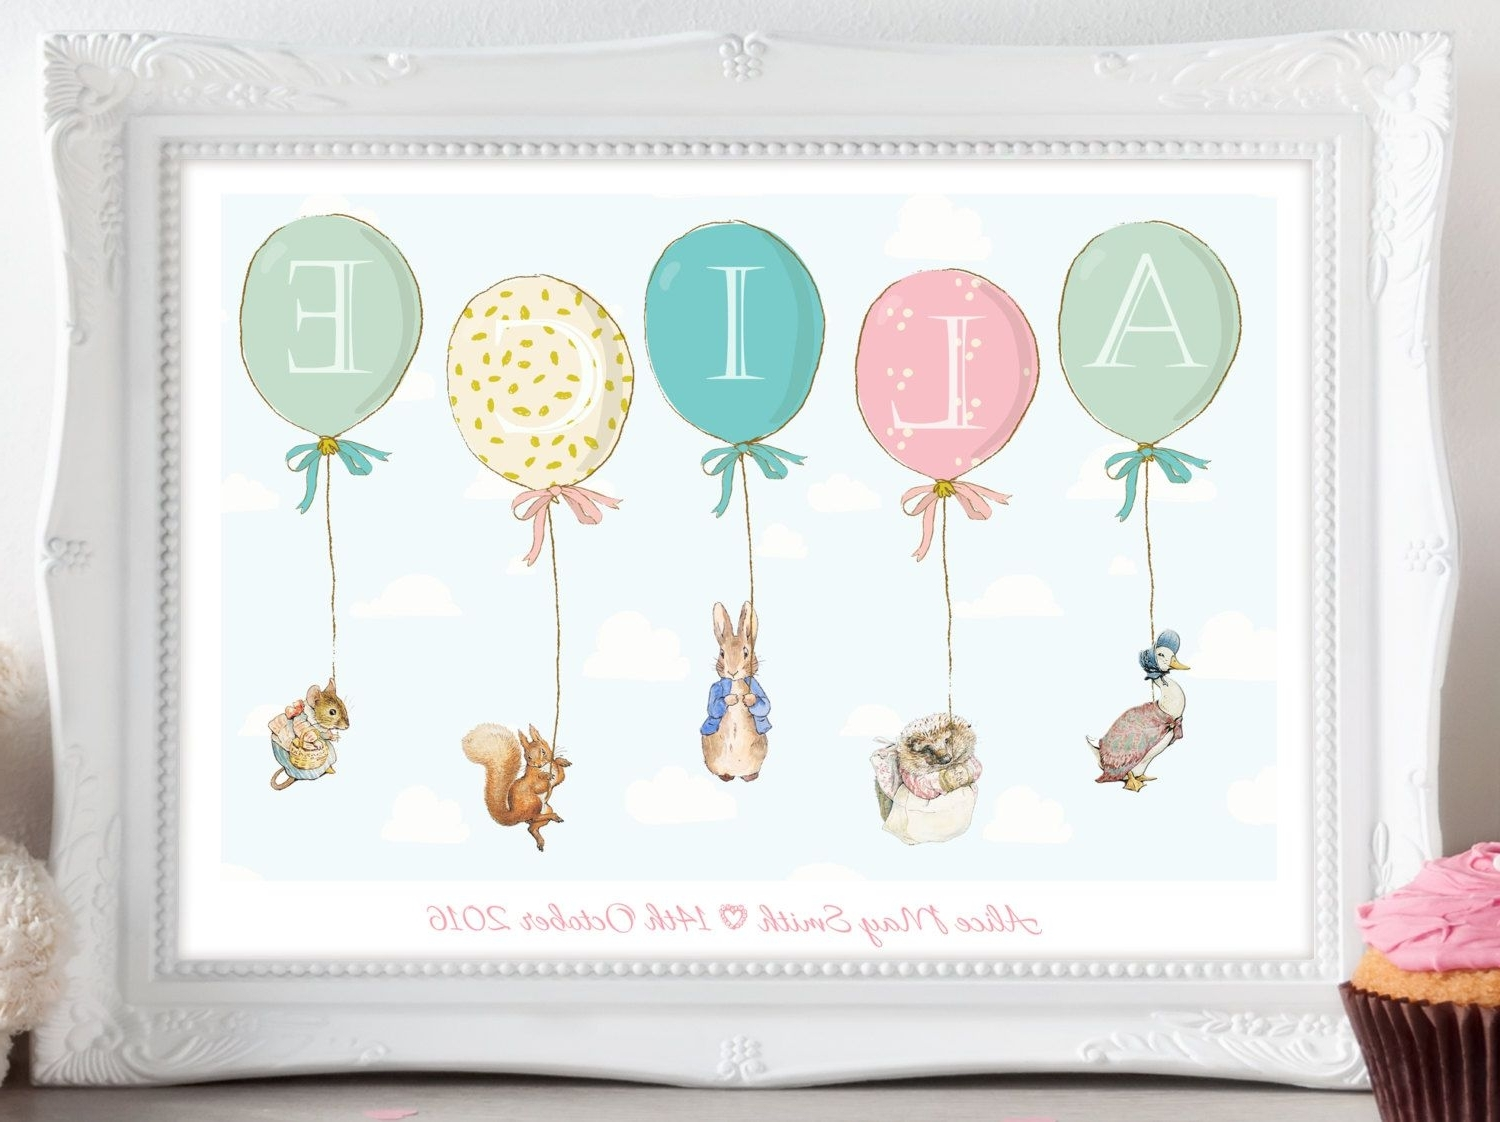 Newest Personalised Peter Rabbit Beatrix Potter Balloon Print Picture In Peter Rabbit Nursery Wall Art (View 5 of 15)